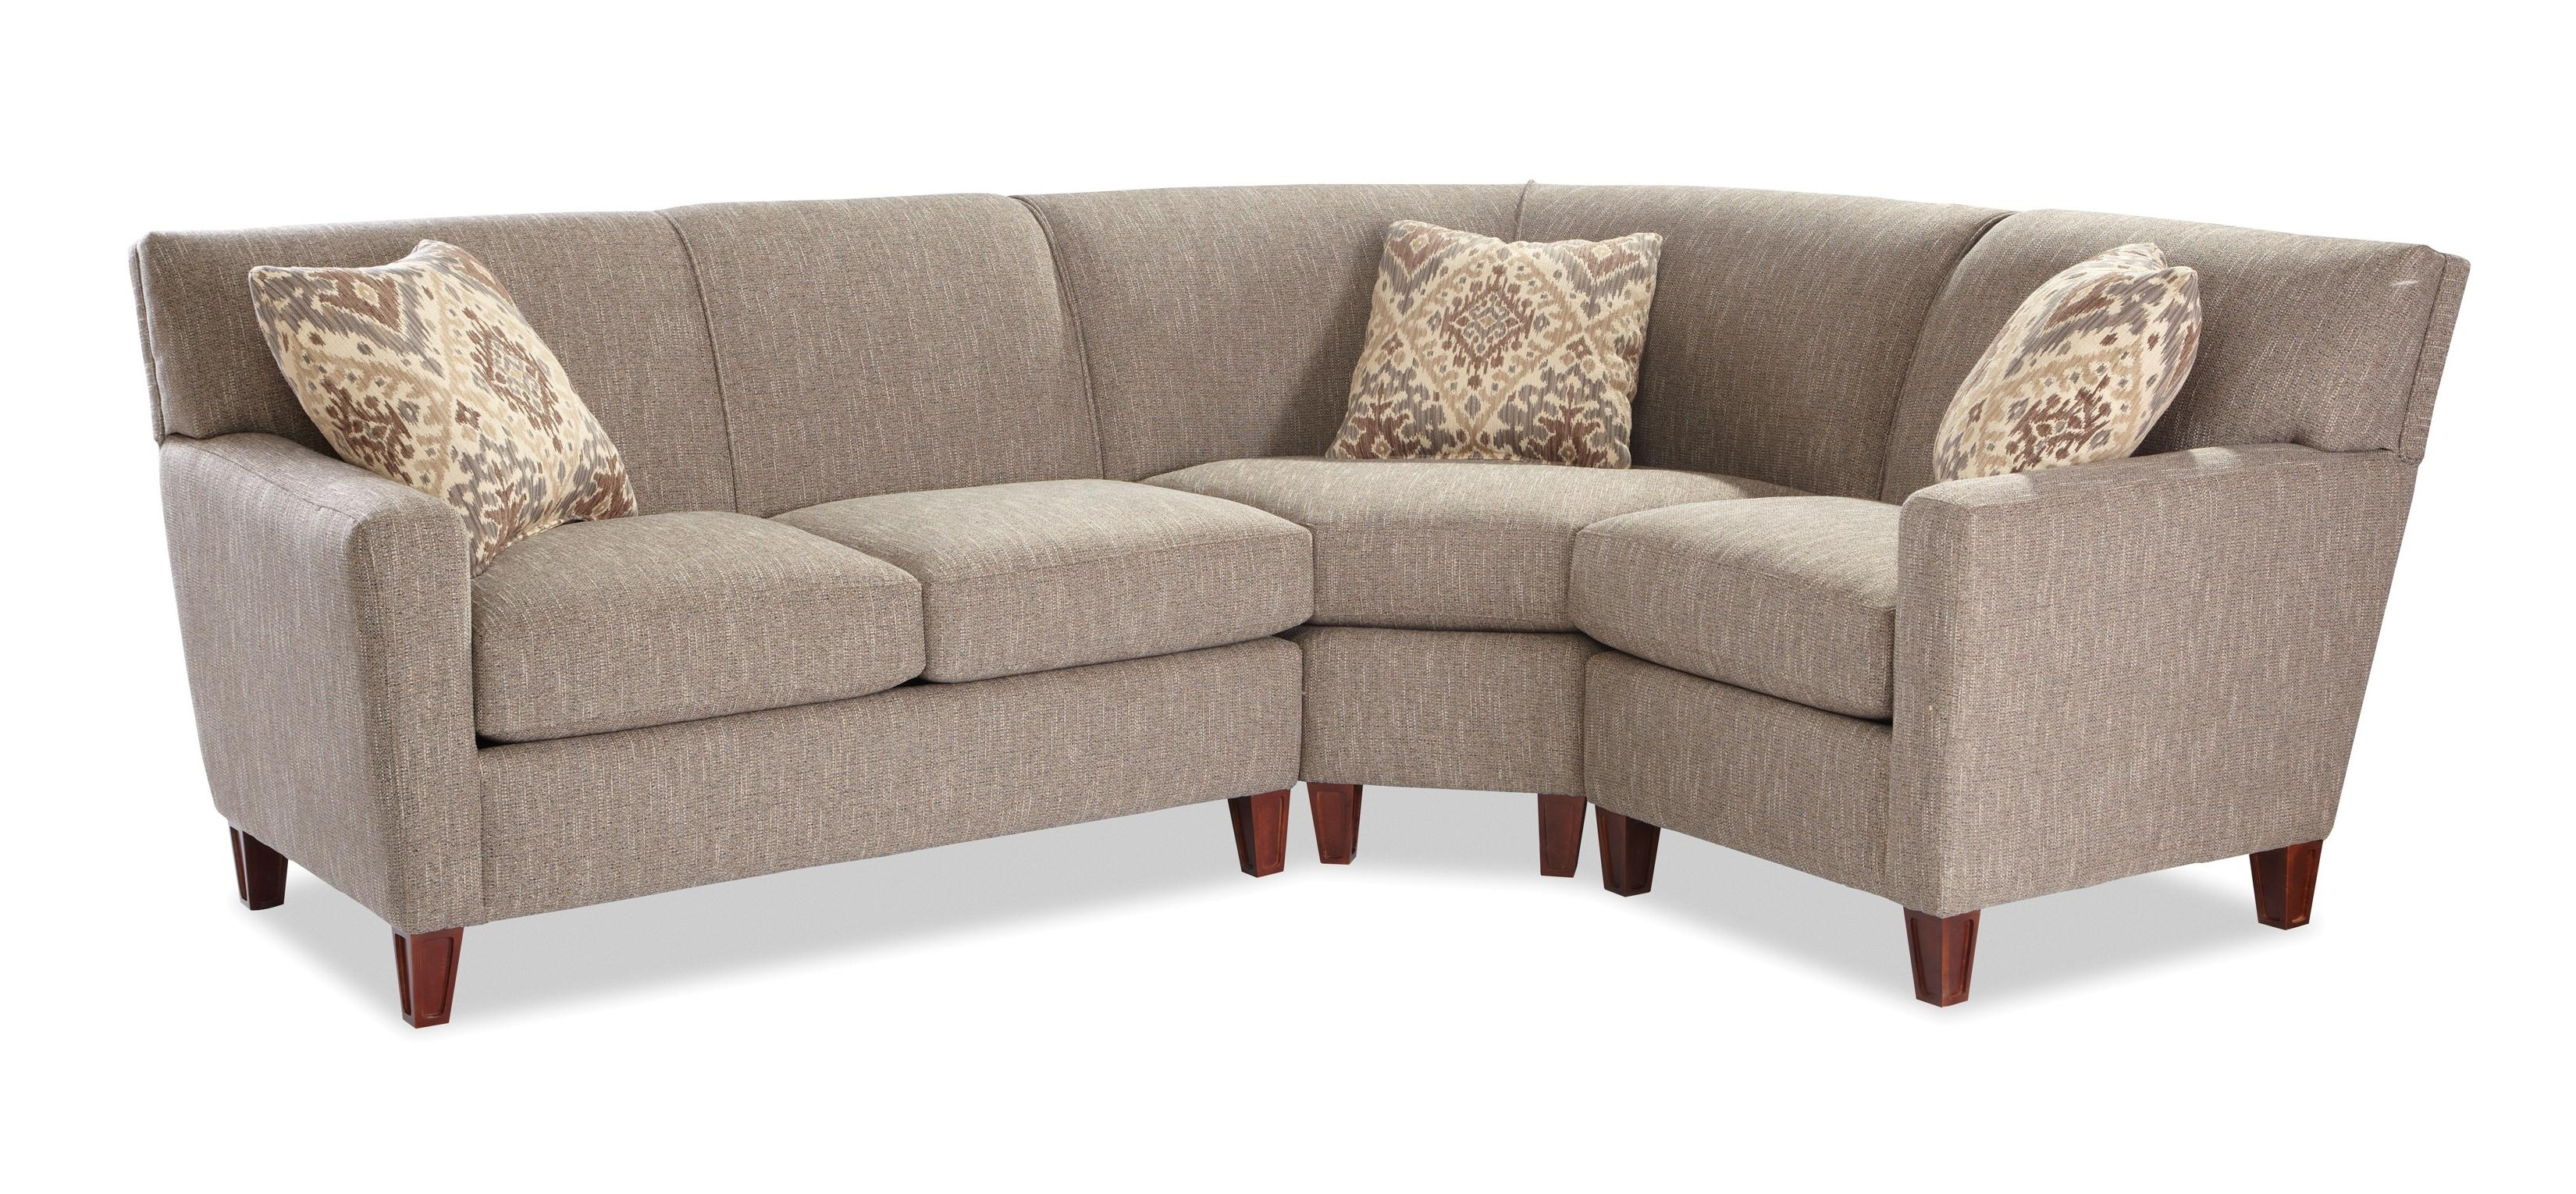 Craftmaster 7864 Three Piece Sectional Sofa With Laf Loveseat for Blaine 4 Piece Sectionals (Image 9 of 30)